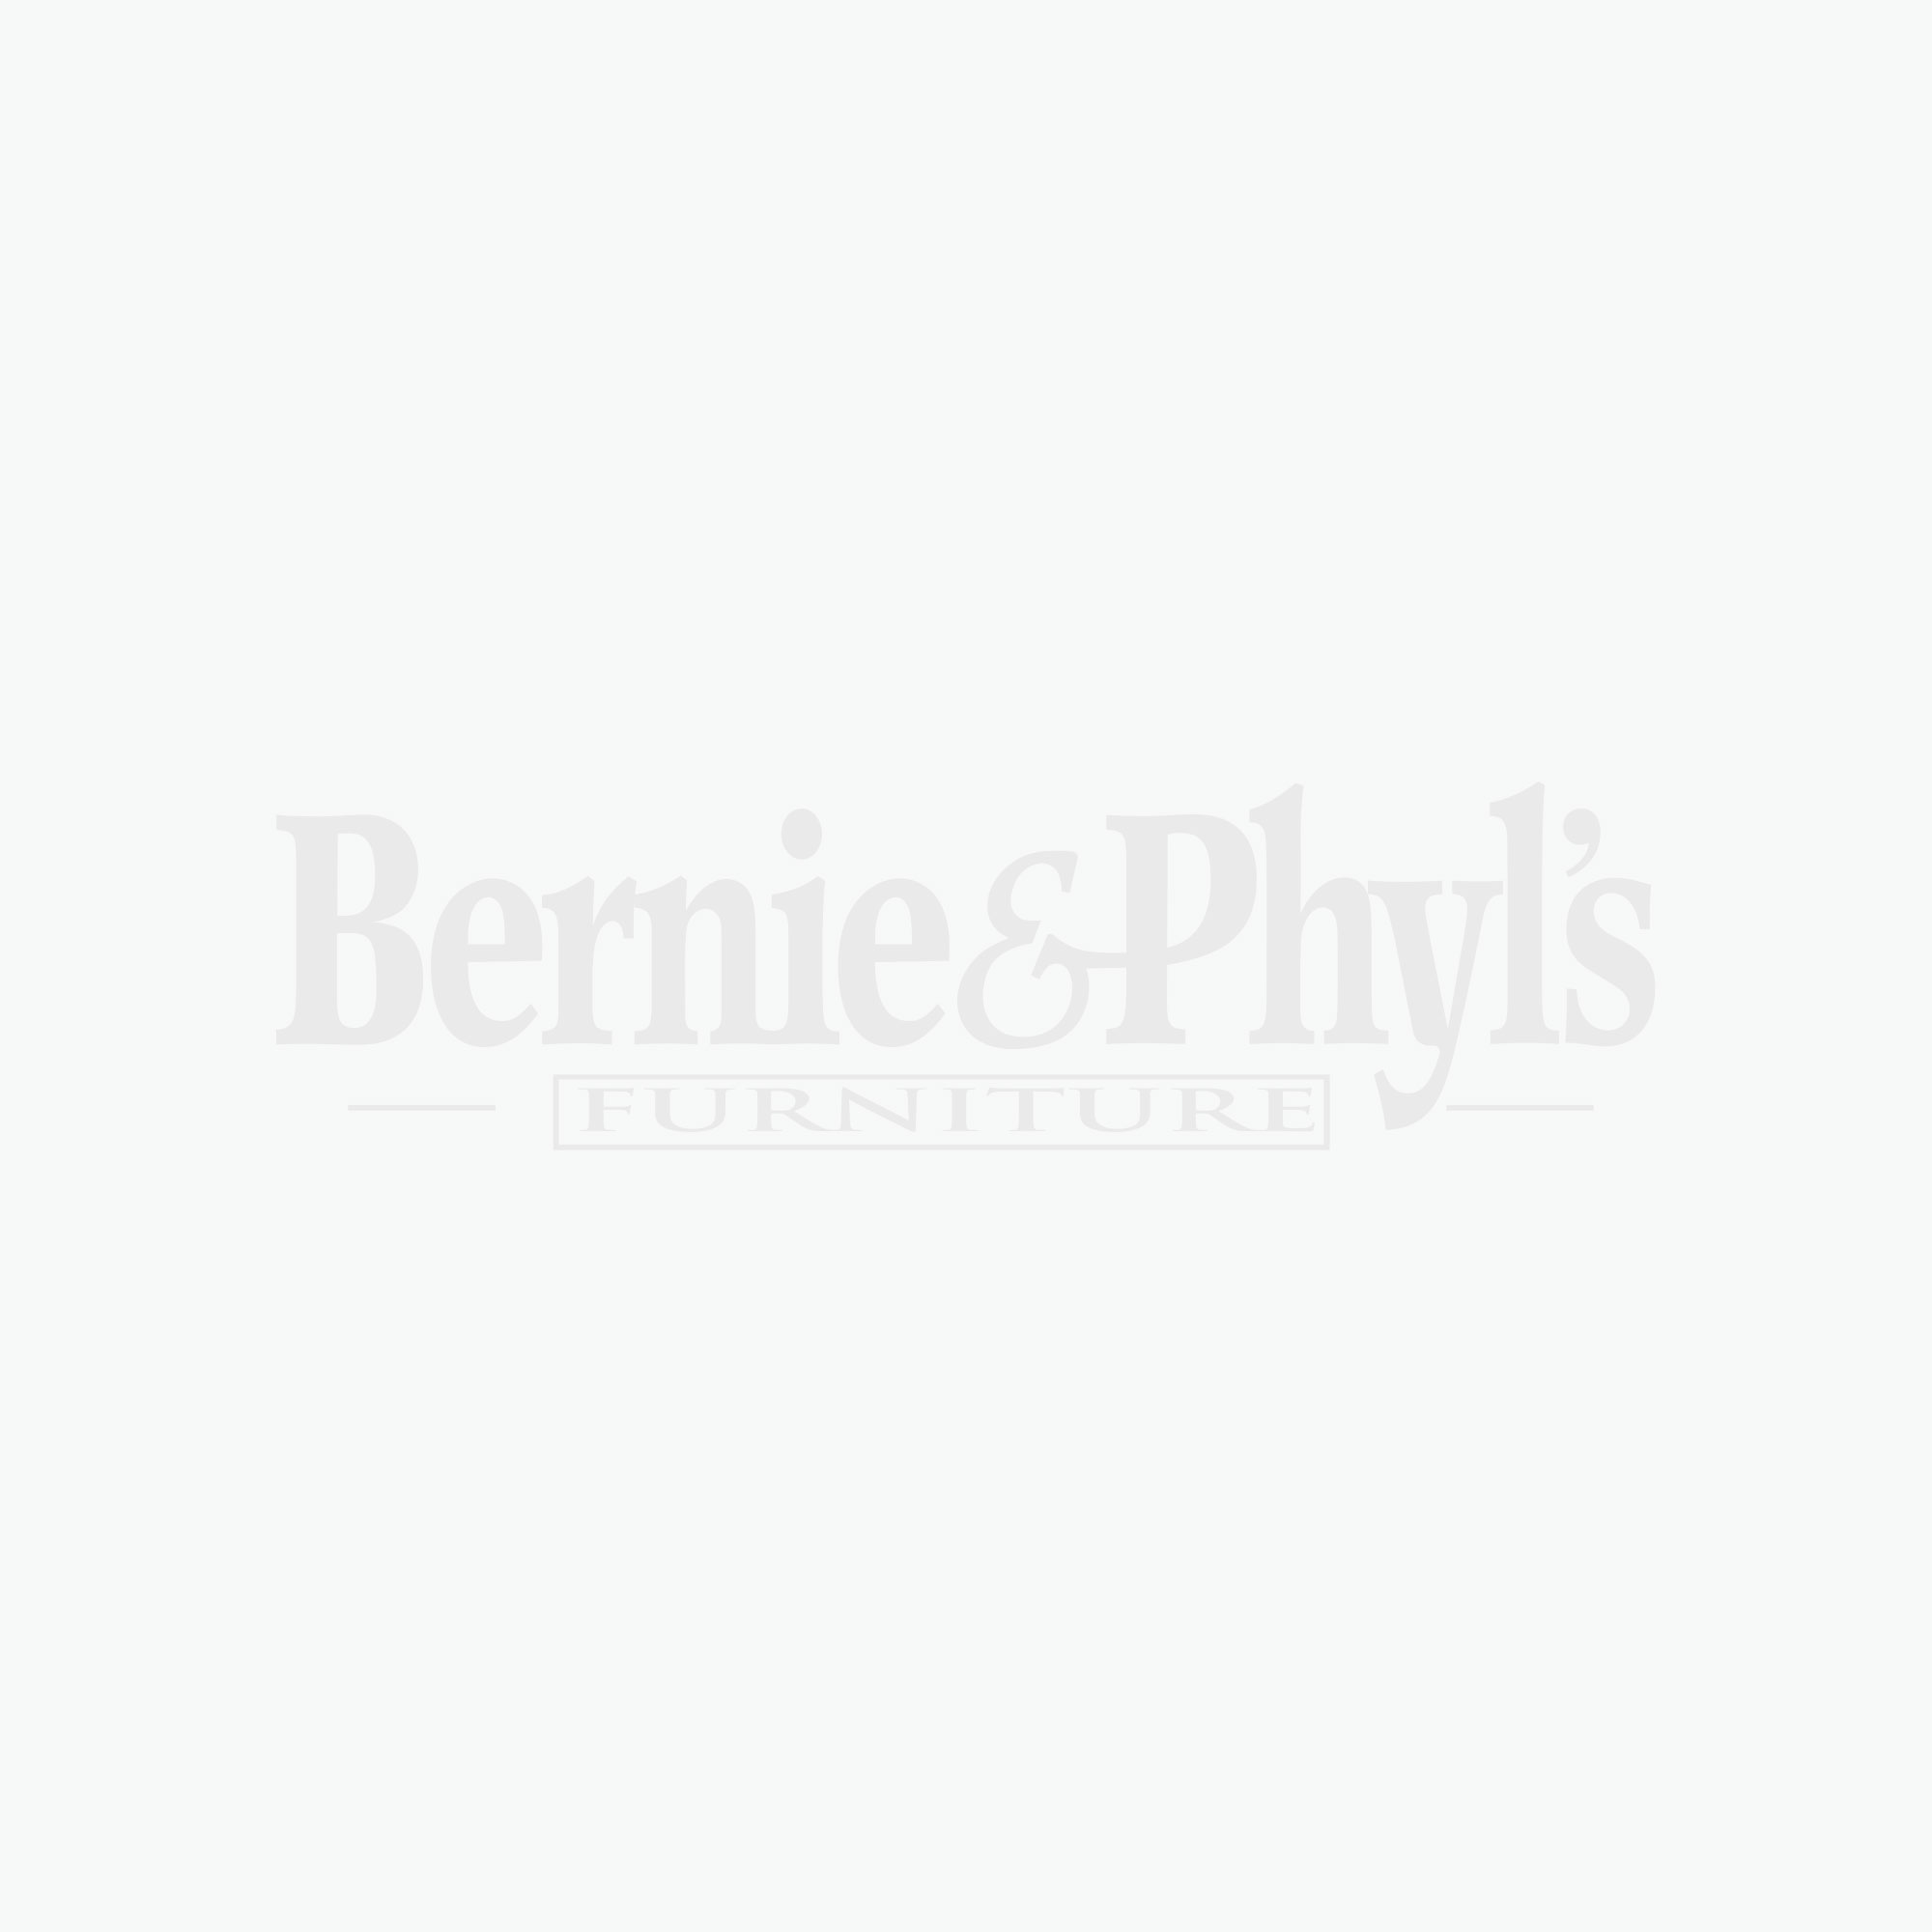 Snuggle Edition Pillowtop Twin Mattress Bernie Amp Phyl S Furniture By Ashley Furniture